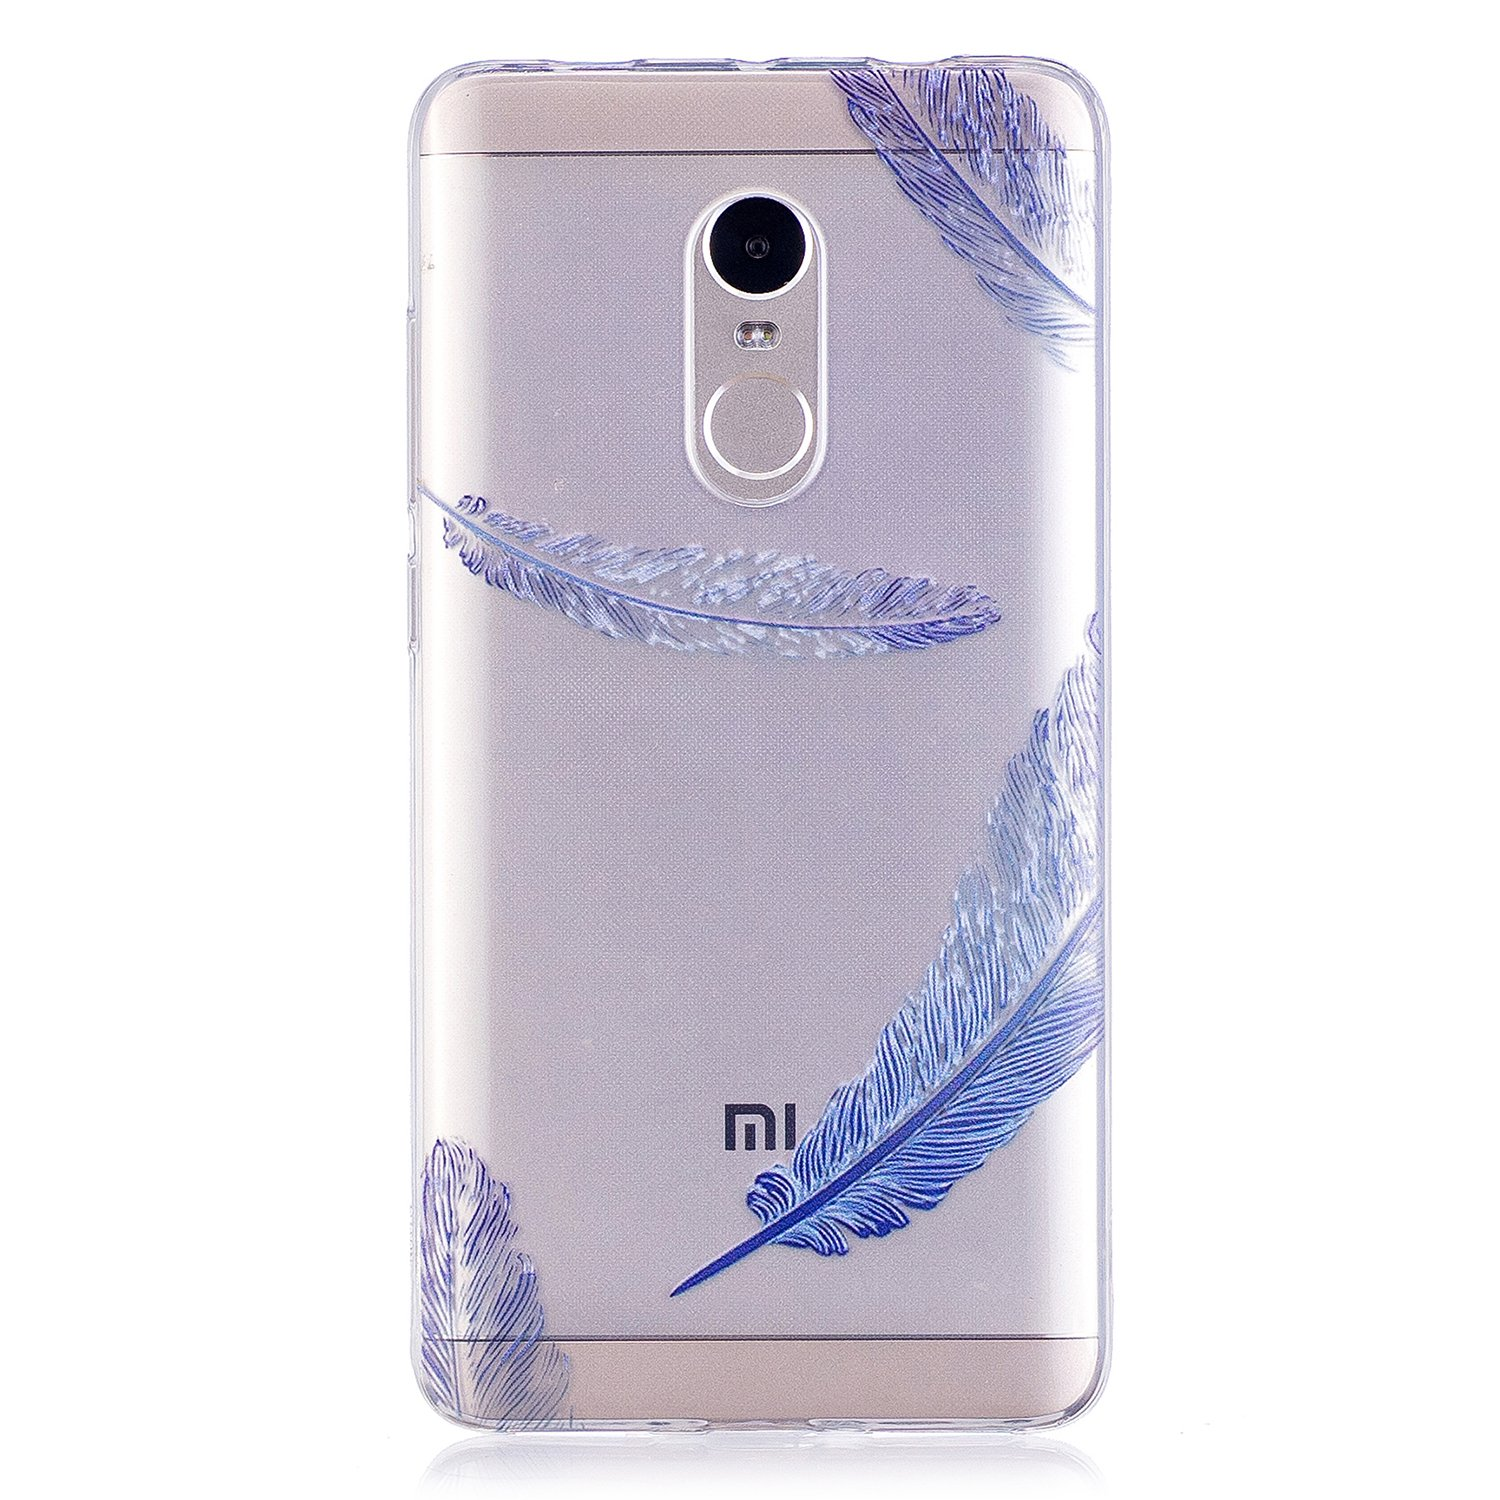 COZY HUT Custodia Xiaomi Redmi Note 4 Cover, Silicone Trasparente Morbida Clear Gel Caso, Ultra Slim Antiurto Anti-Graffio Bumper Case Cover per Xiaomi Redmi Note 4 - Piume Blu